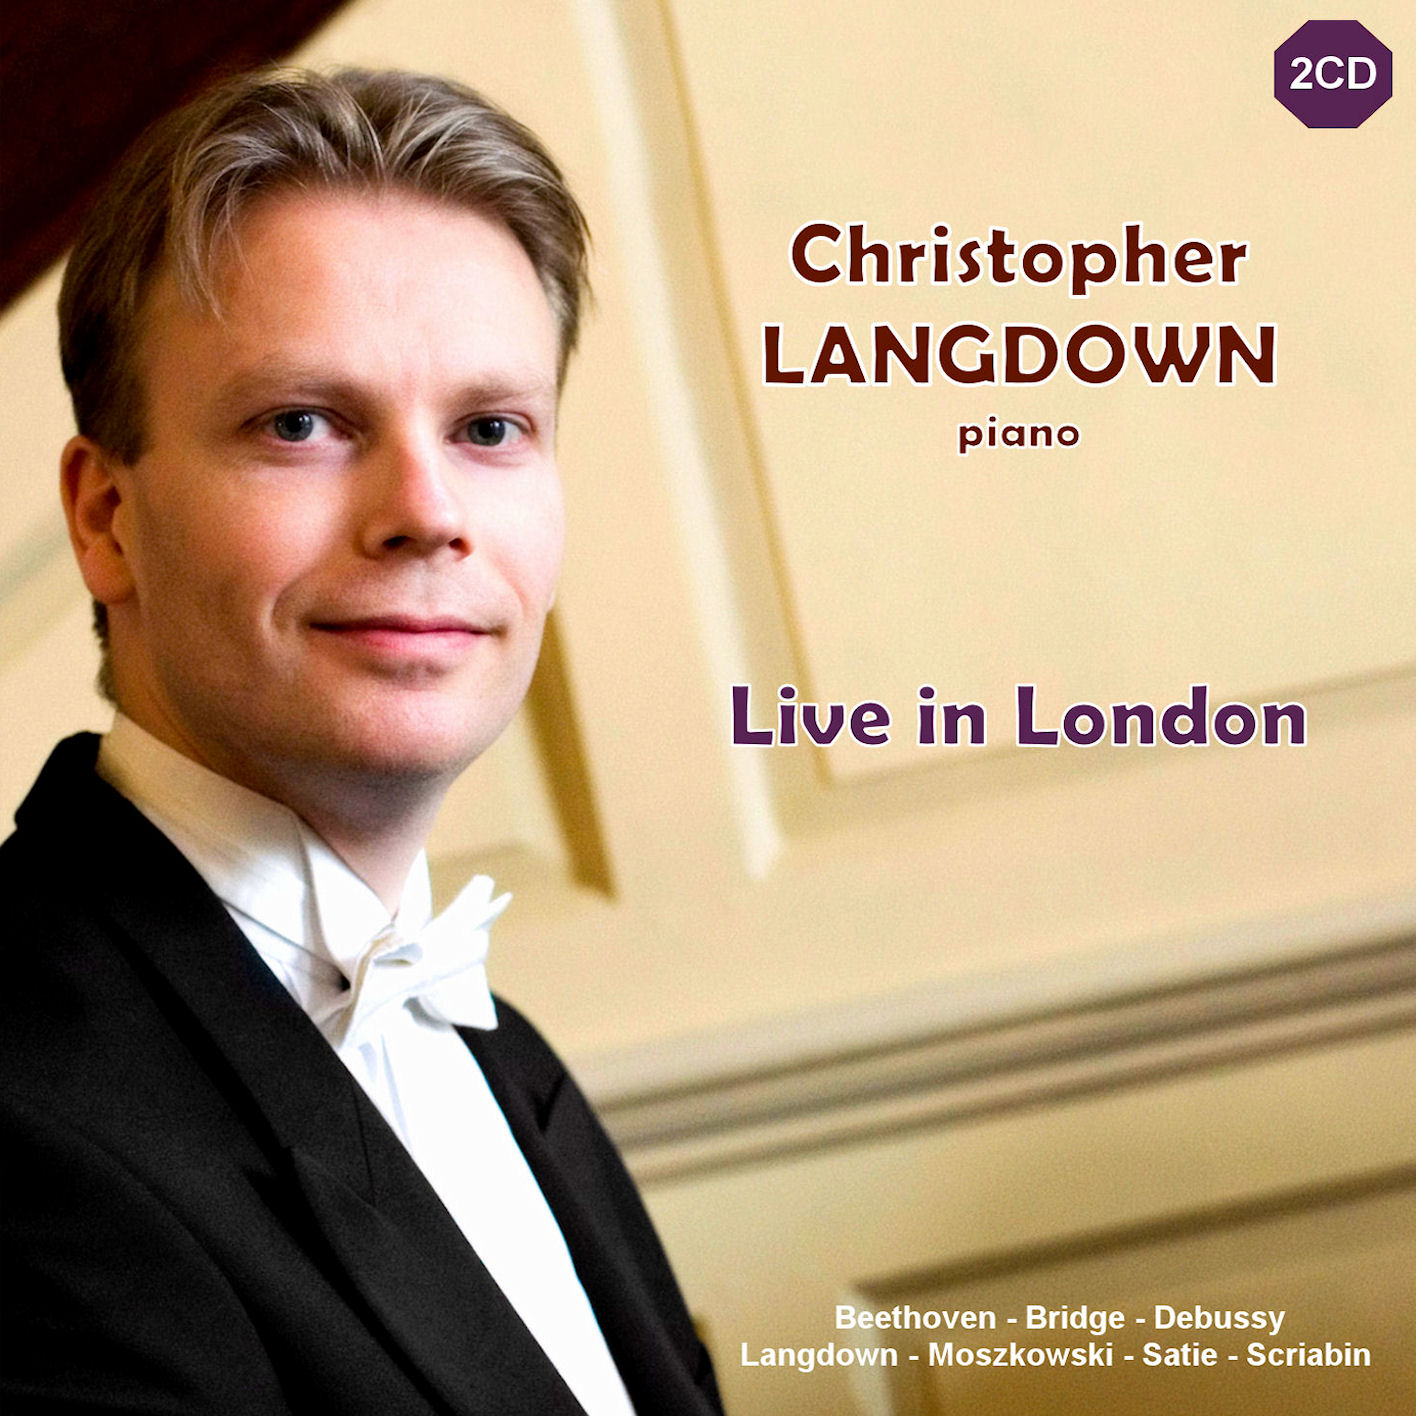 Piano Recital: Langdown, Christopher - MOSZKOWSKI, M. / DEBUSSY, C. / BEETHOVEN, L. van / BRIDGE, F. / LANGDOWN, C. / SCRIABIN, A. (Live in London)